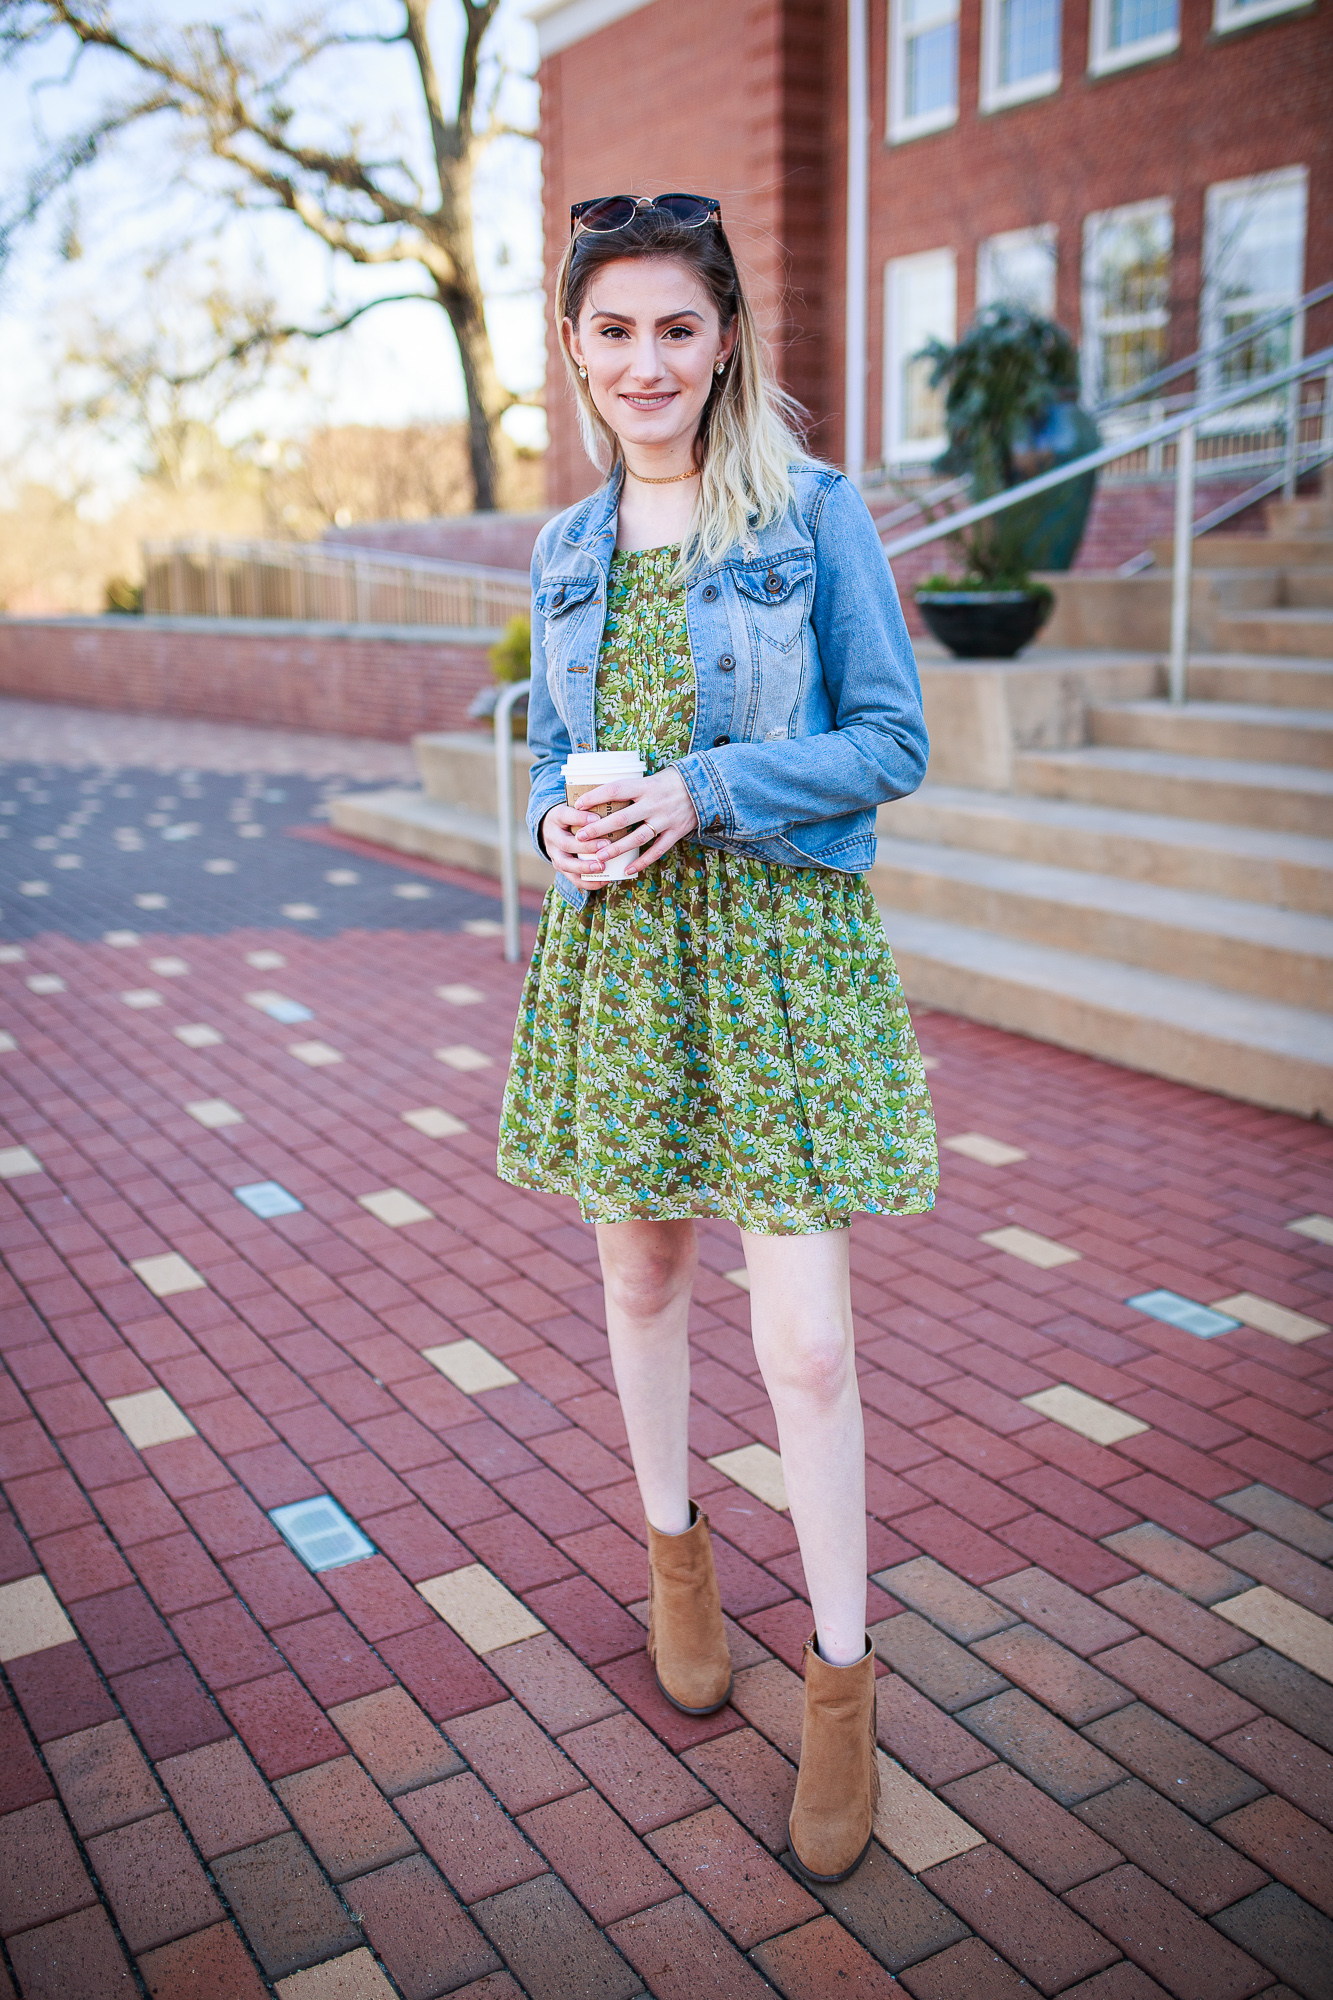 North Carolina fashion and lifestyle blogger Jessica Linn wearing her version of spring trends. A floral print dress from Charming Charlie, fringe faux suede booties from Forever21, a denim jacket from Ross, and a gold choker from local Cary NC business CY Design Studio.